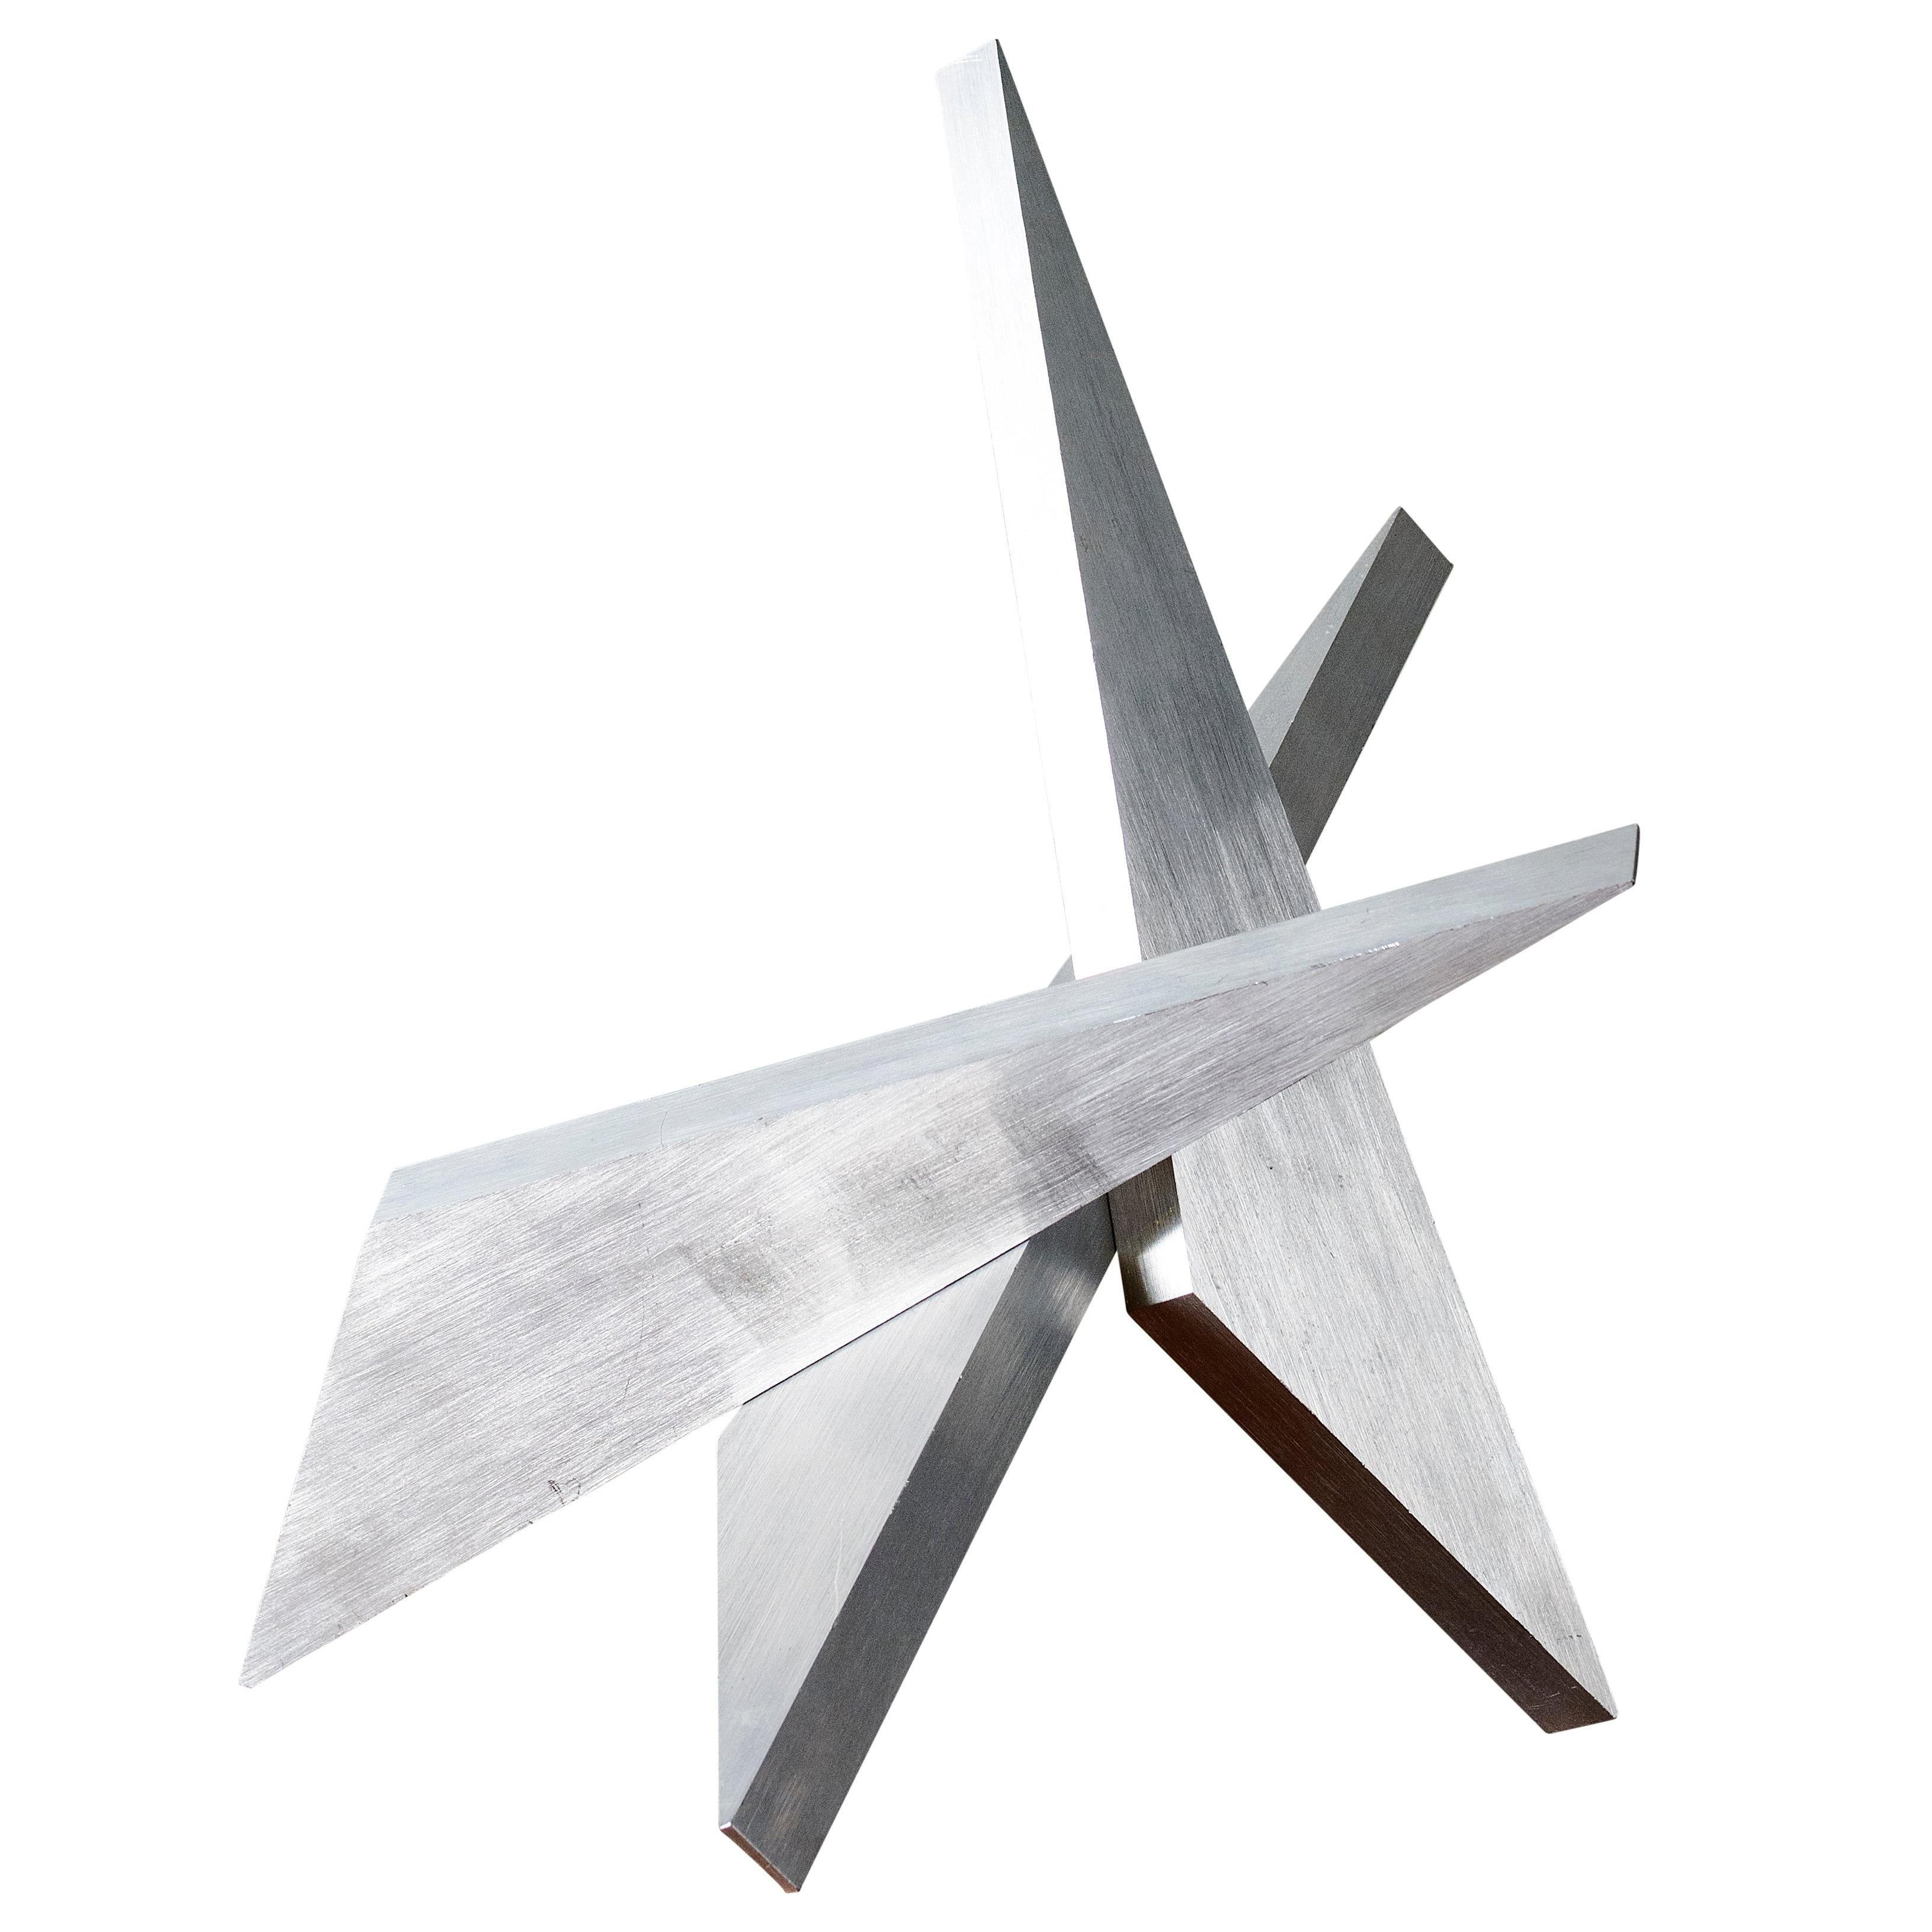 Abstract Aluminum Sculpture by Larry Mohr